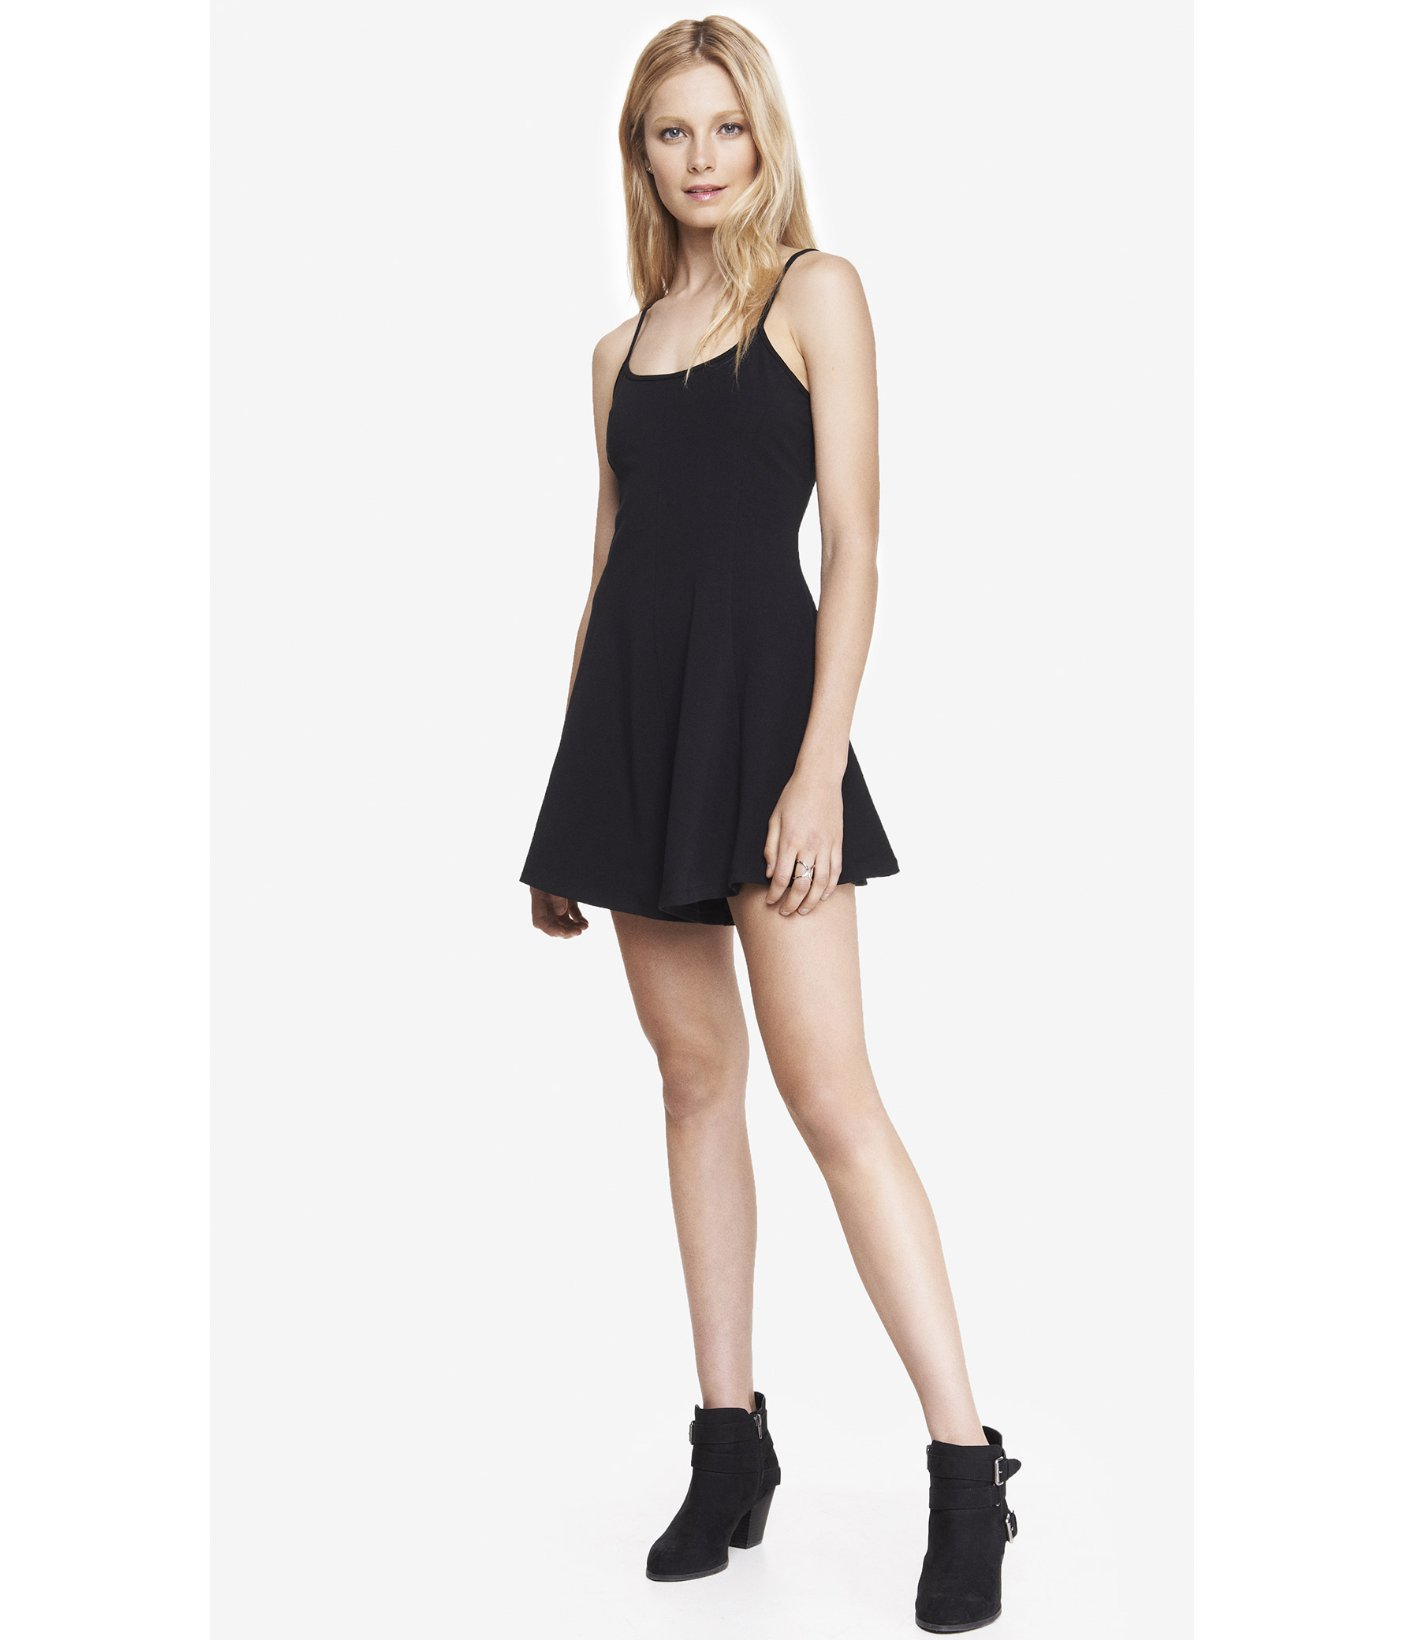 Express Black Stretch Cotton Skater Romper in Black | Lyst